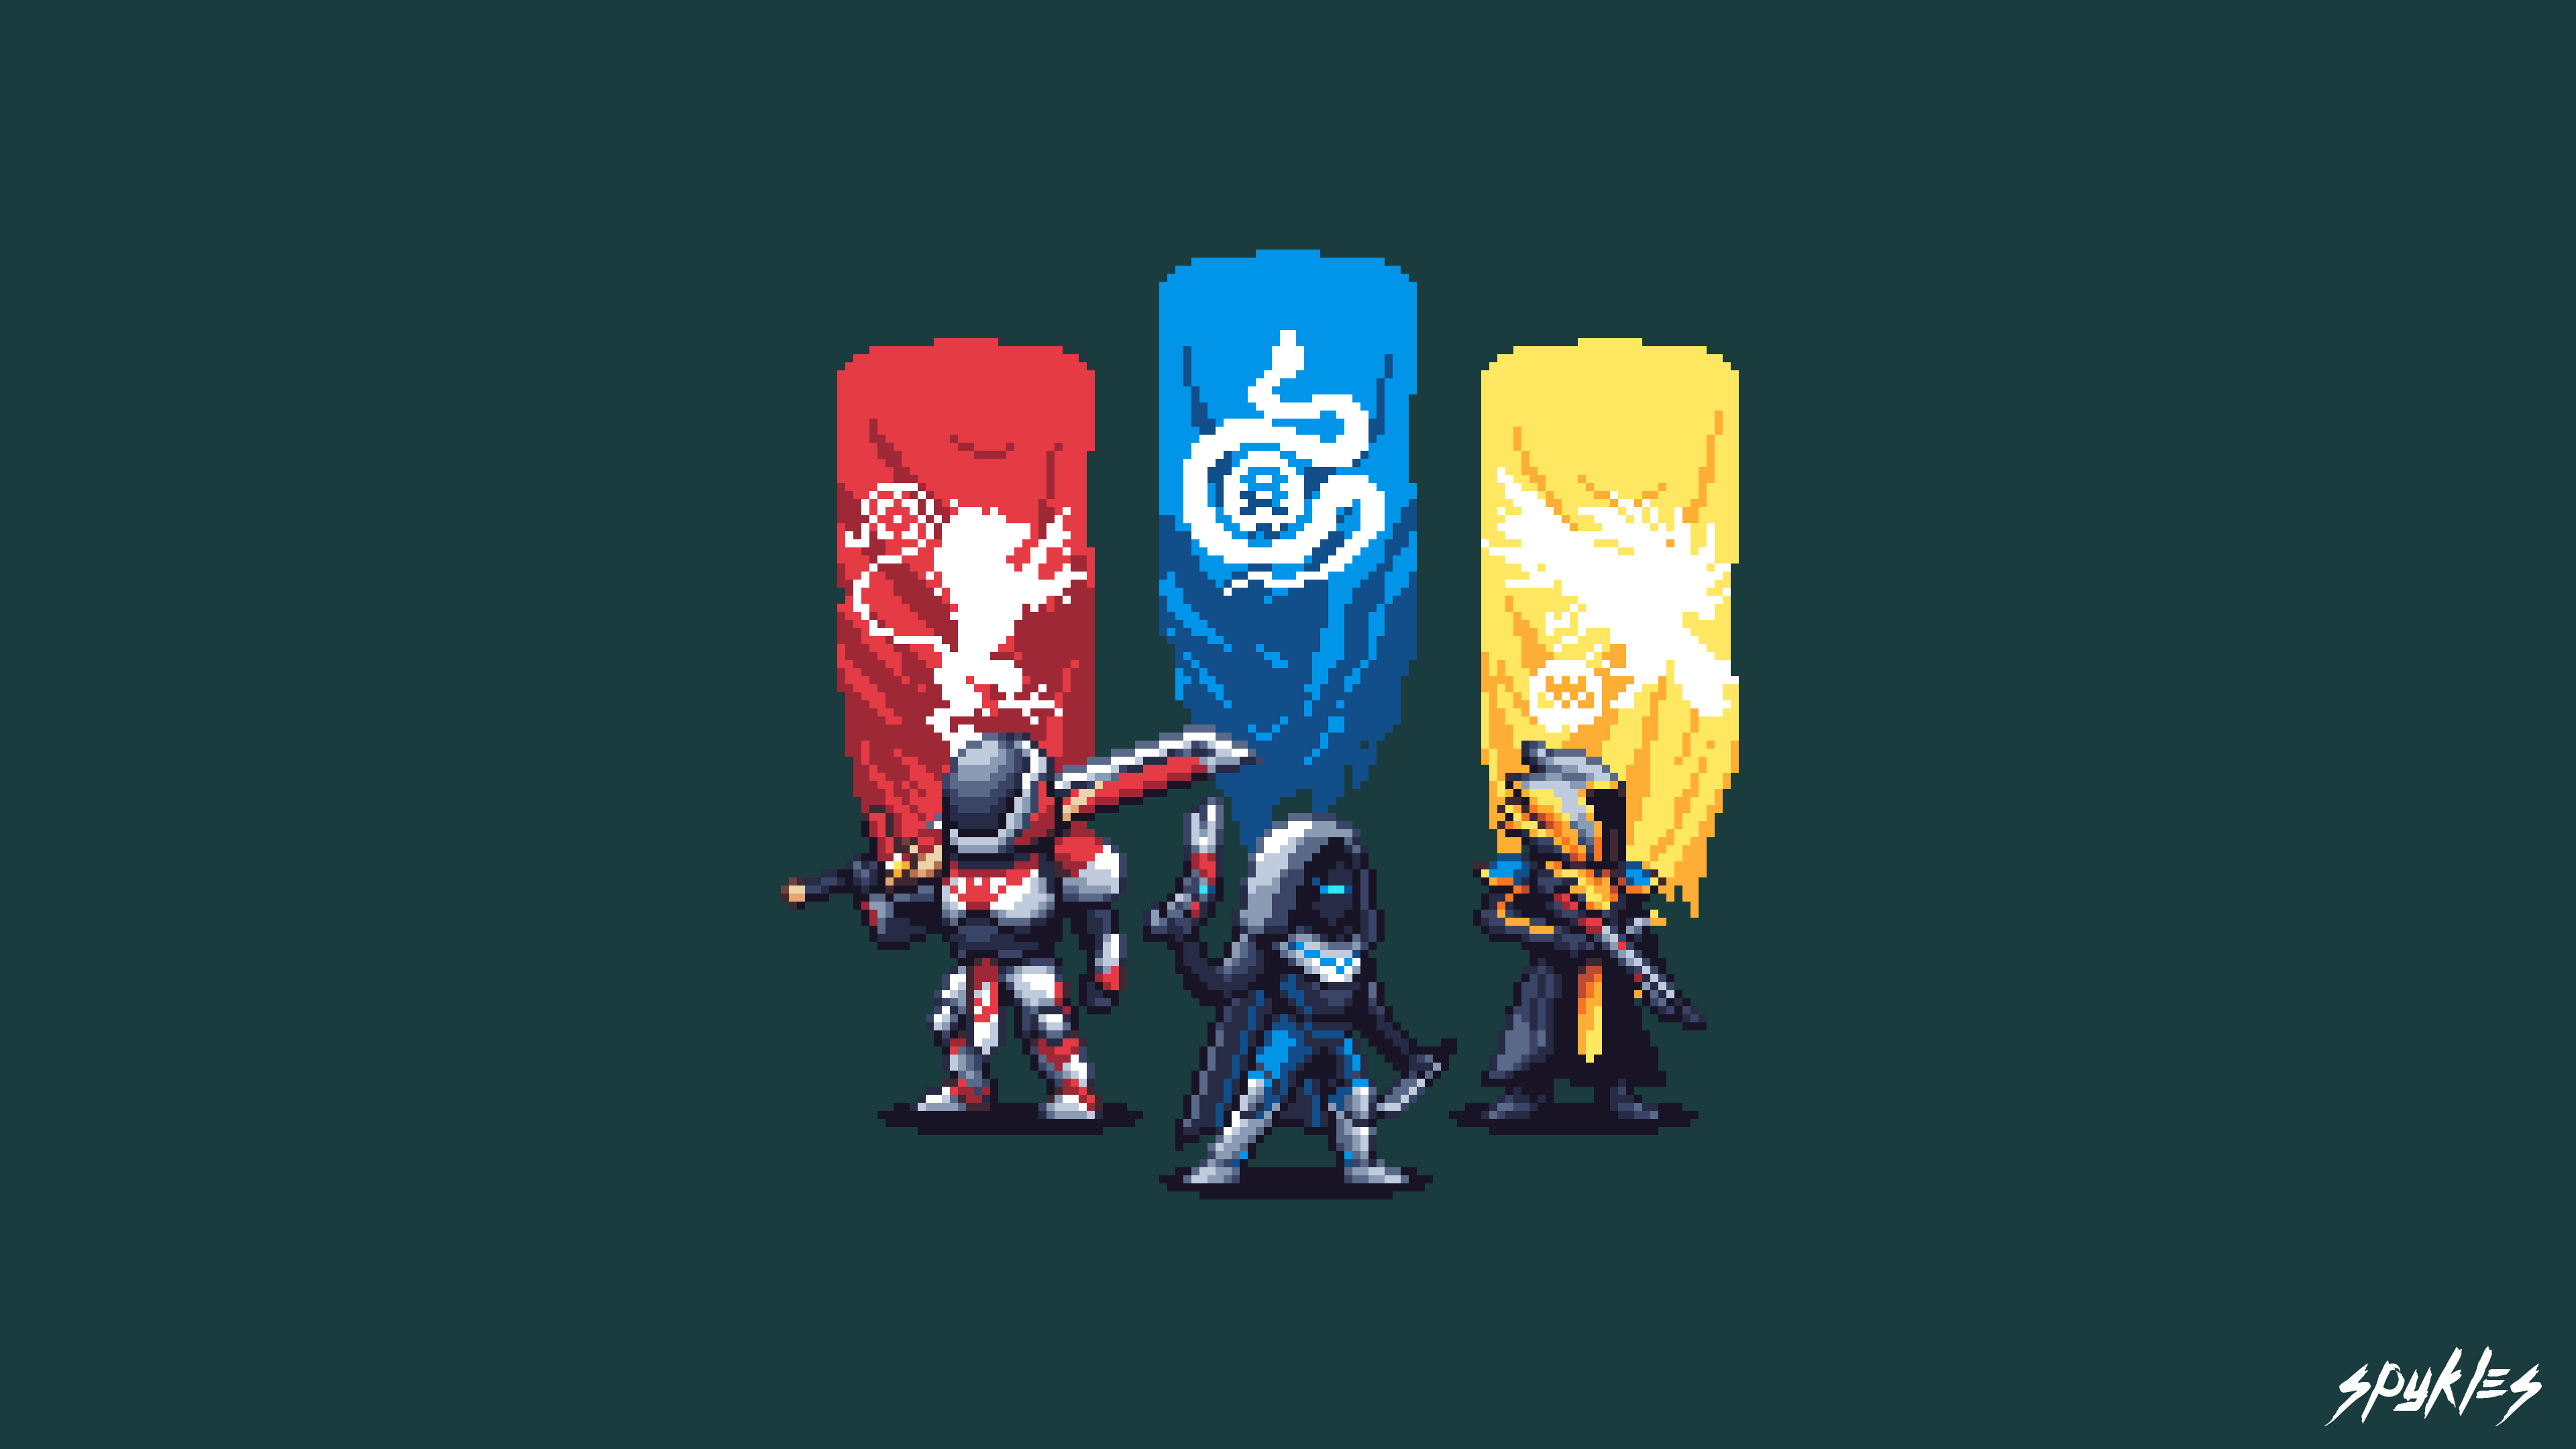 Destiny 2 Pixel Artwork 4k HD Games